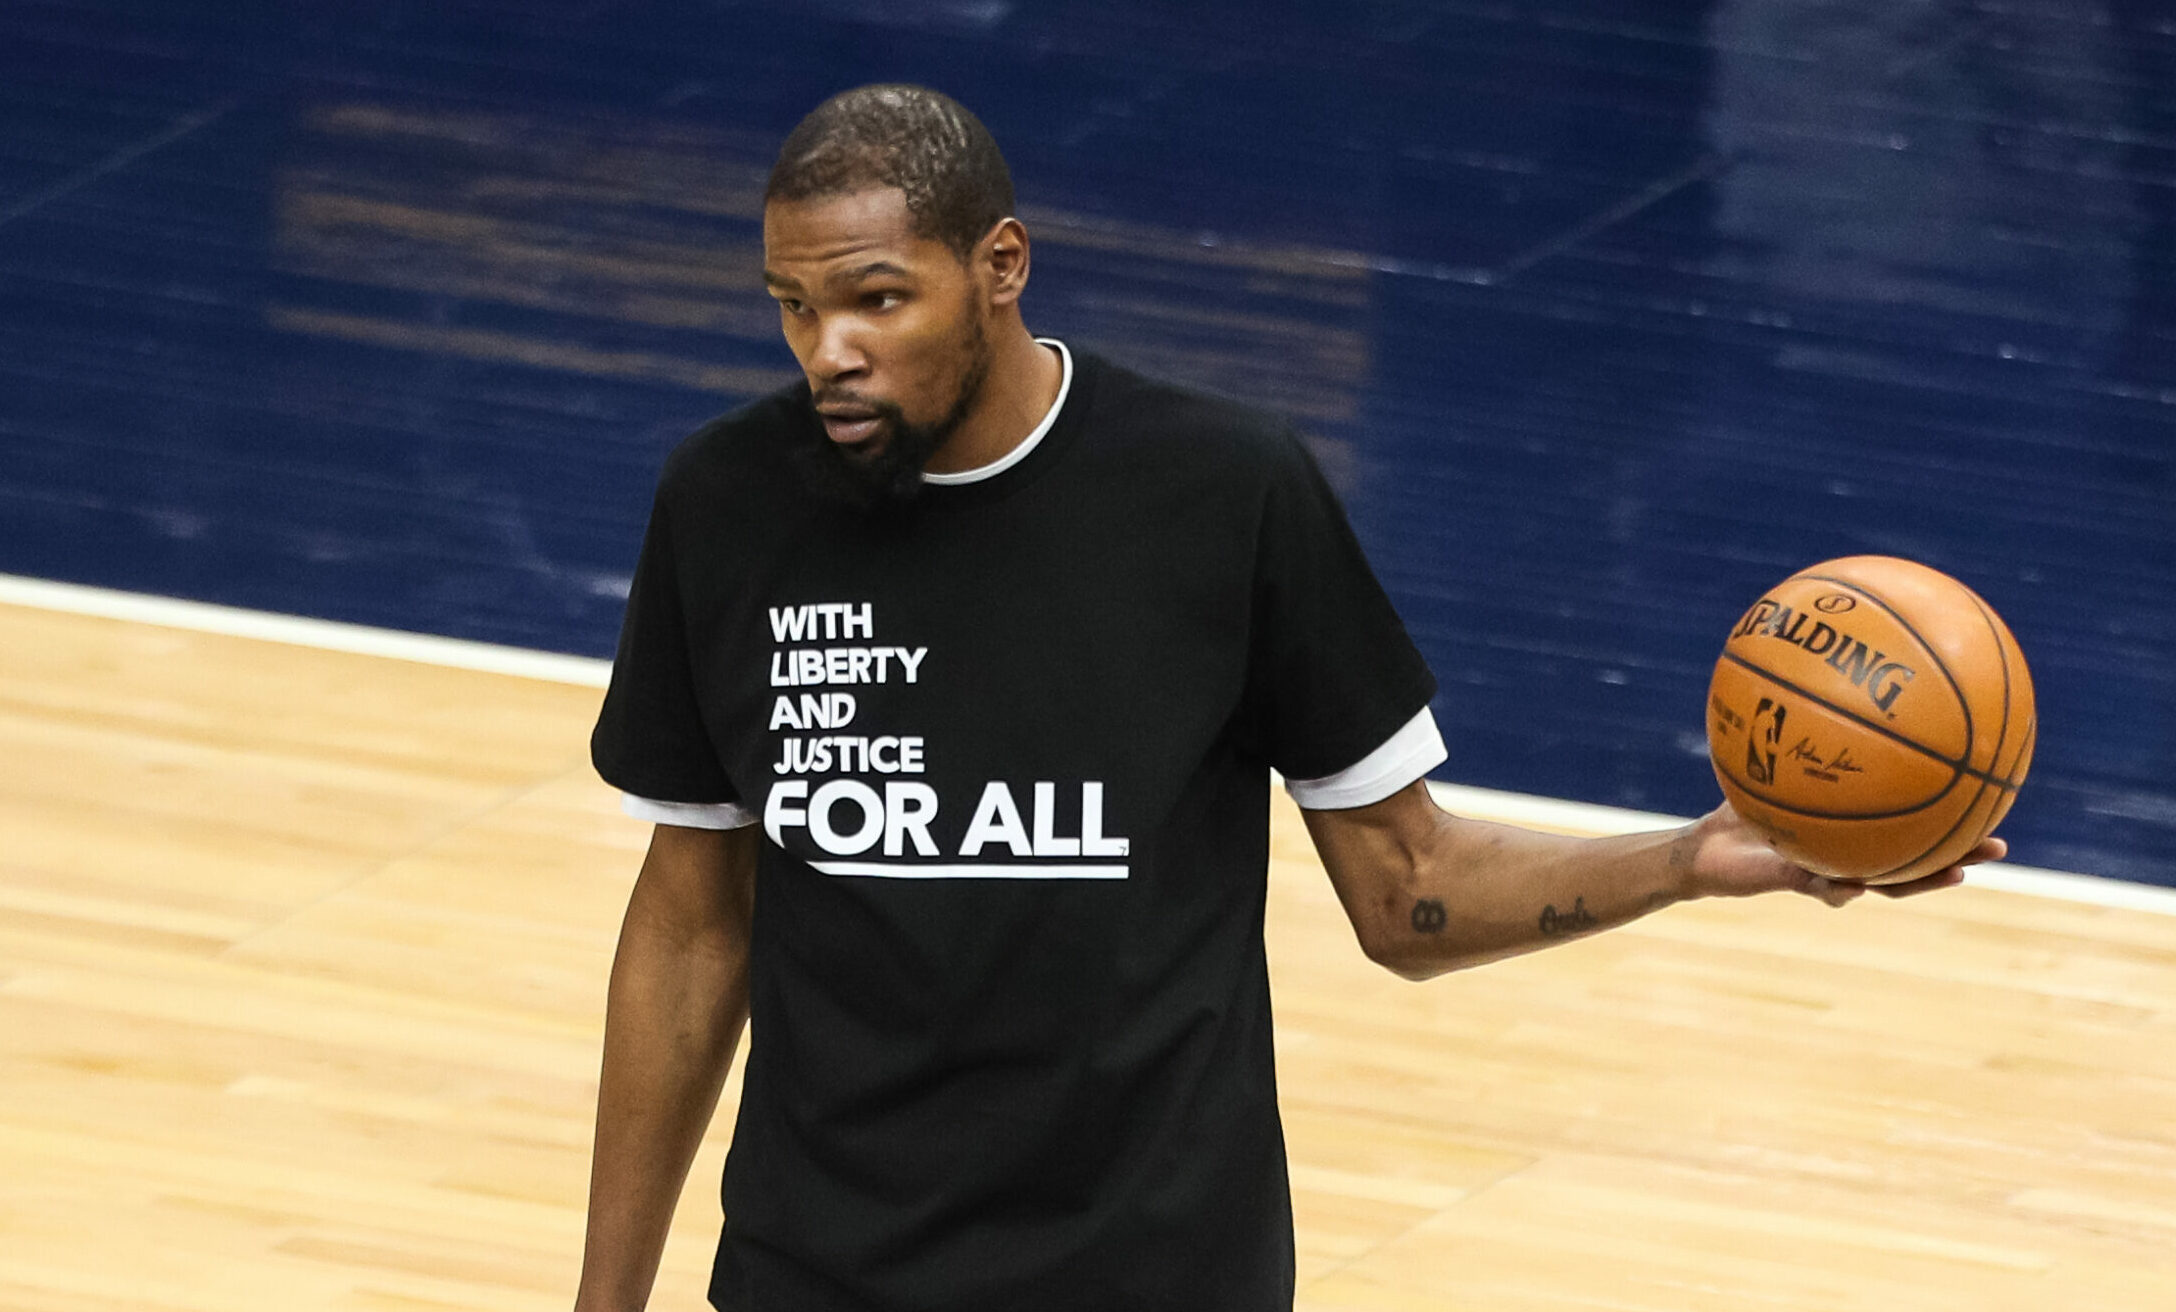 Timberwolves honor Daunte Wright with warmup shirts, pregame moment of silence